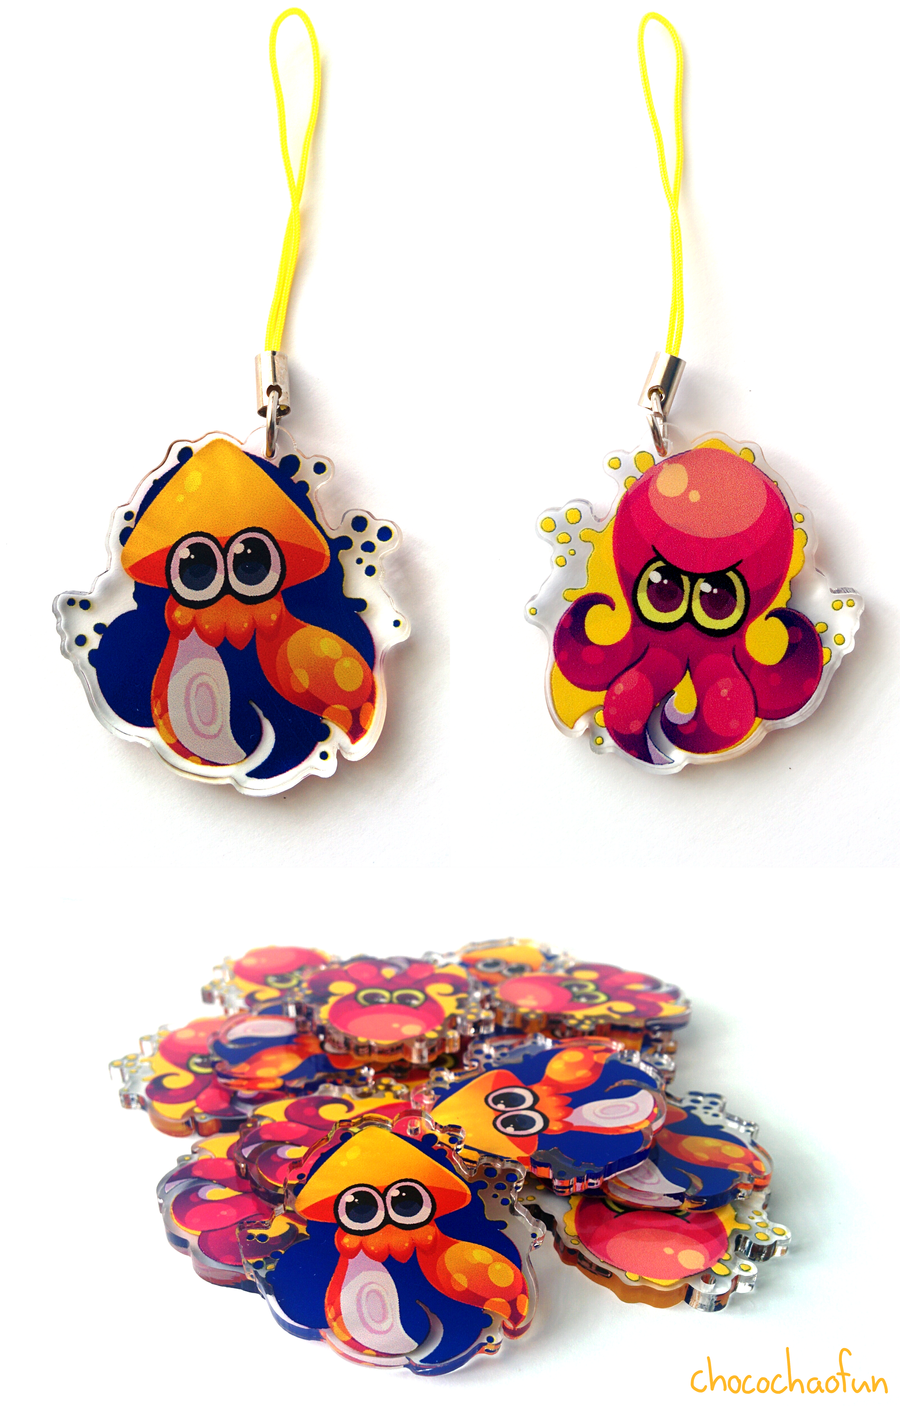 Splatoon Charms - Inkling and Octoling by ChocoChaoFun